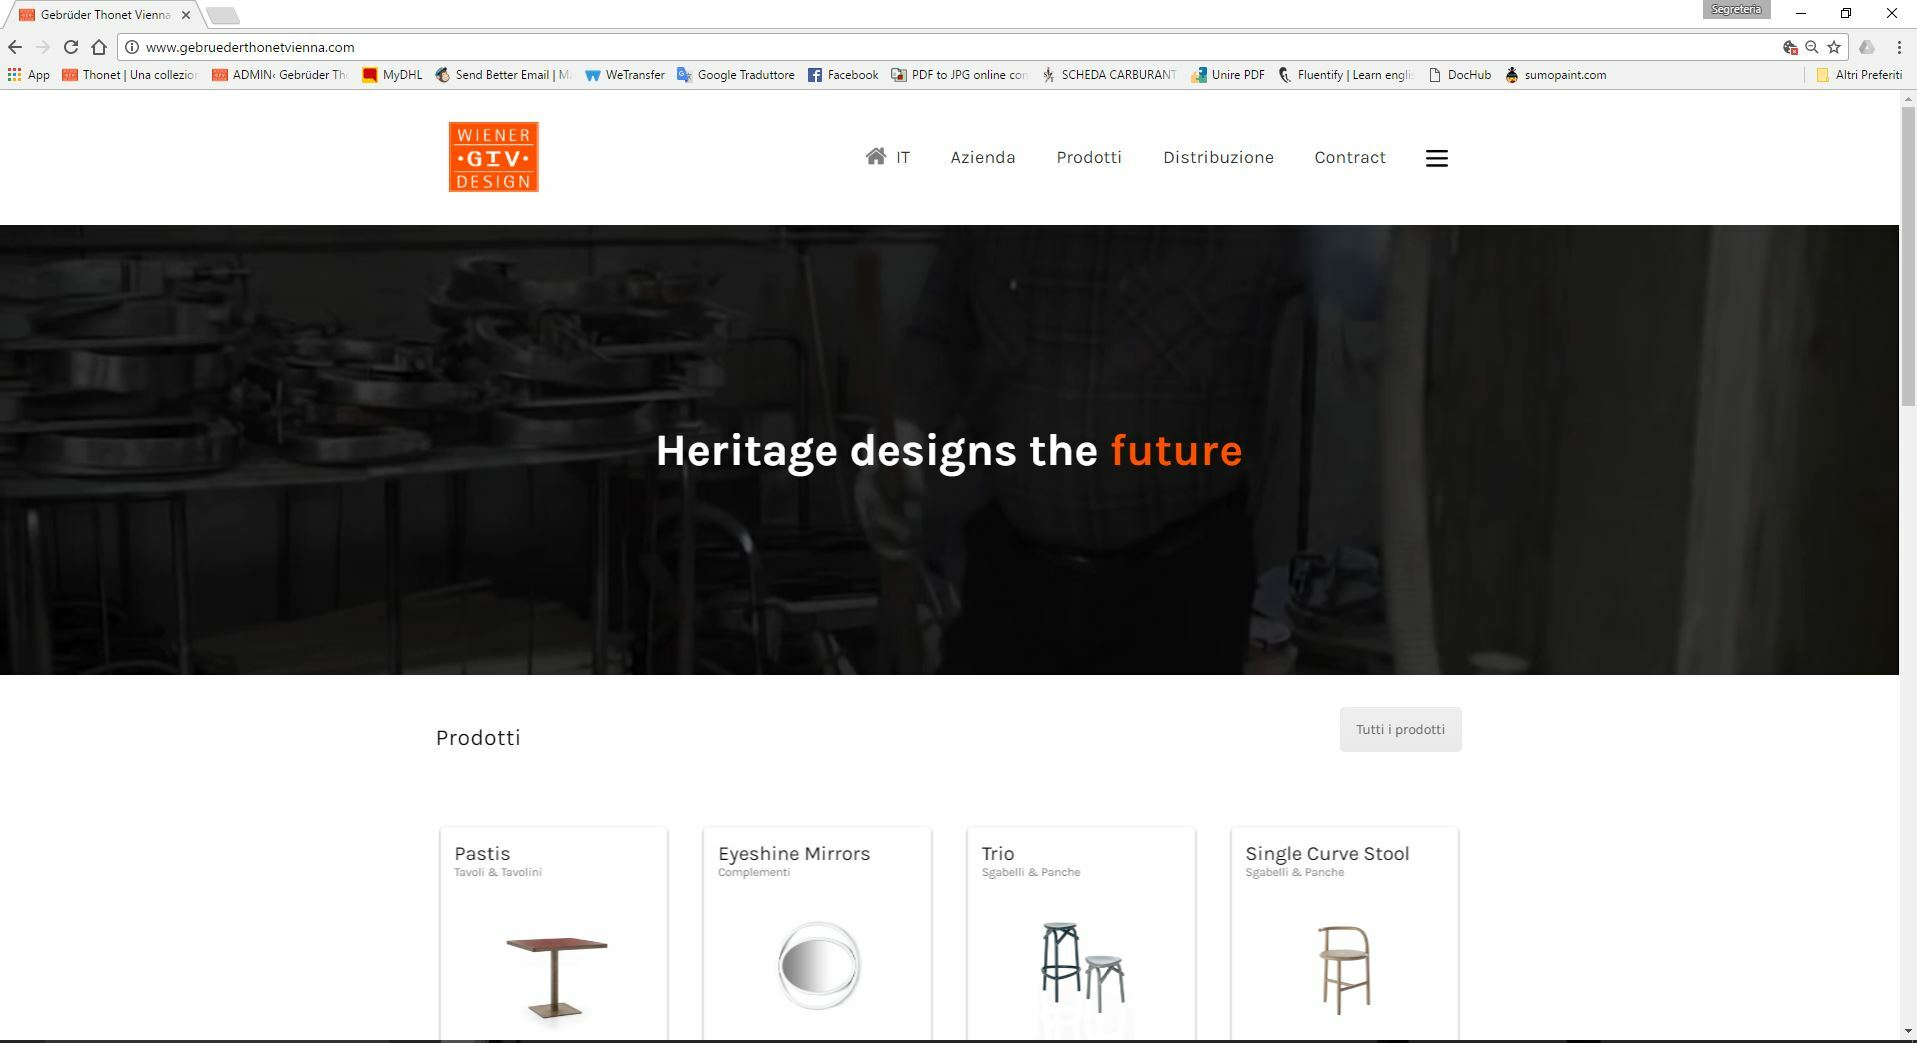 New website and new catalogue for gebrüder thonet vienna gmbh